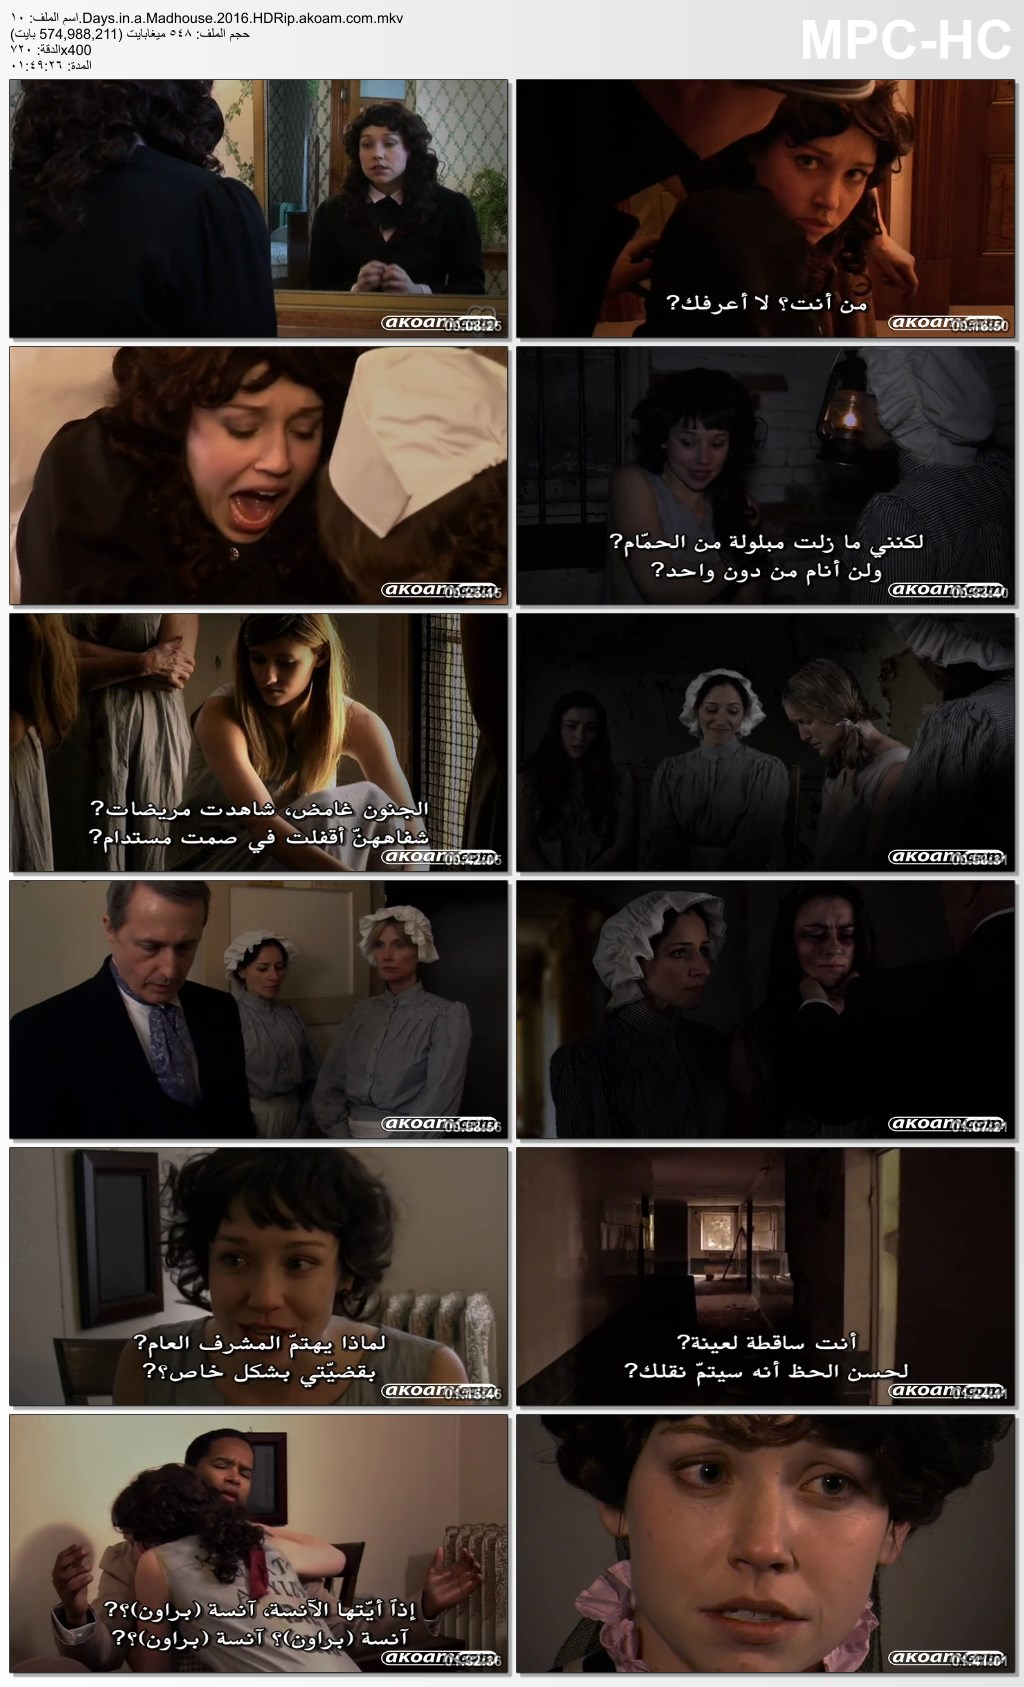 الدراما,10Days in a Madhouse